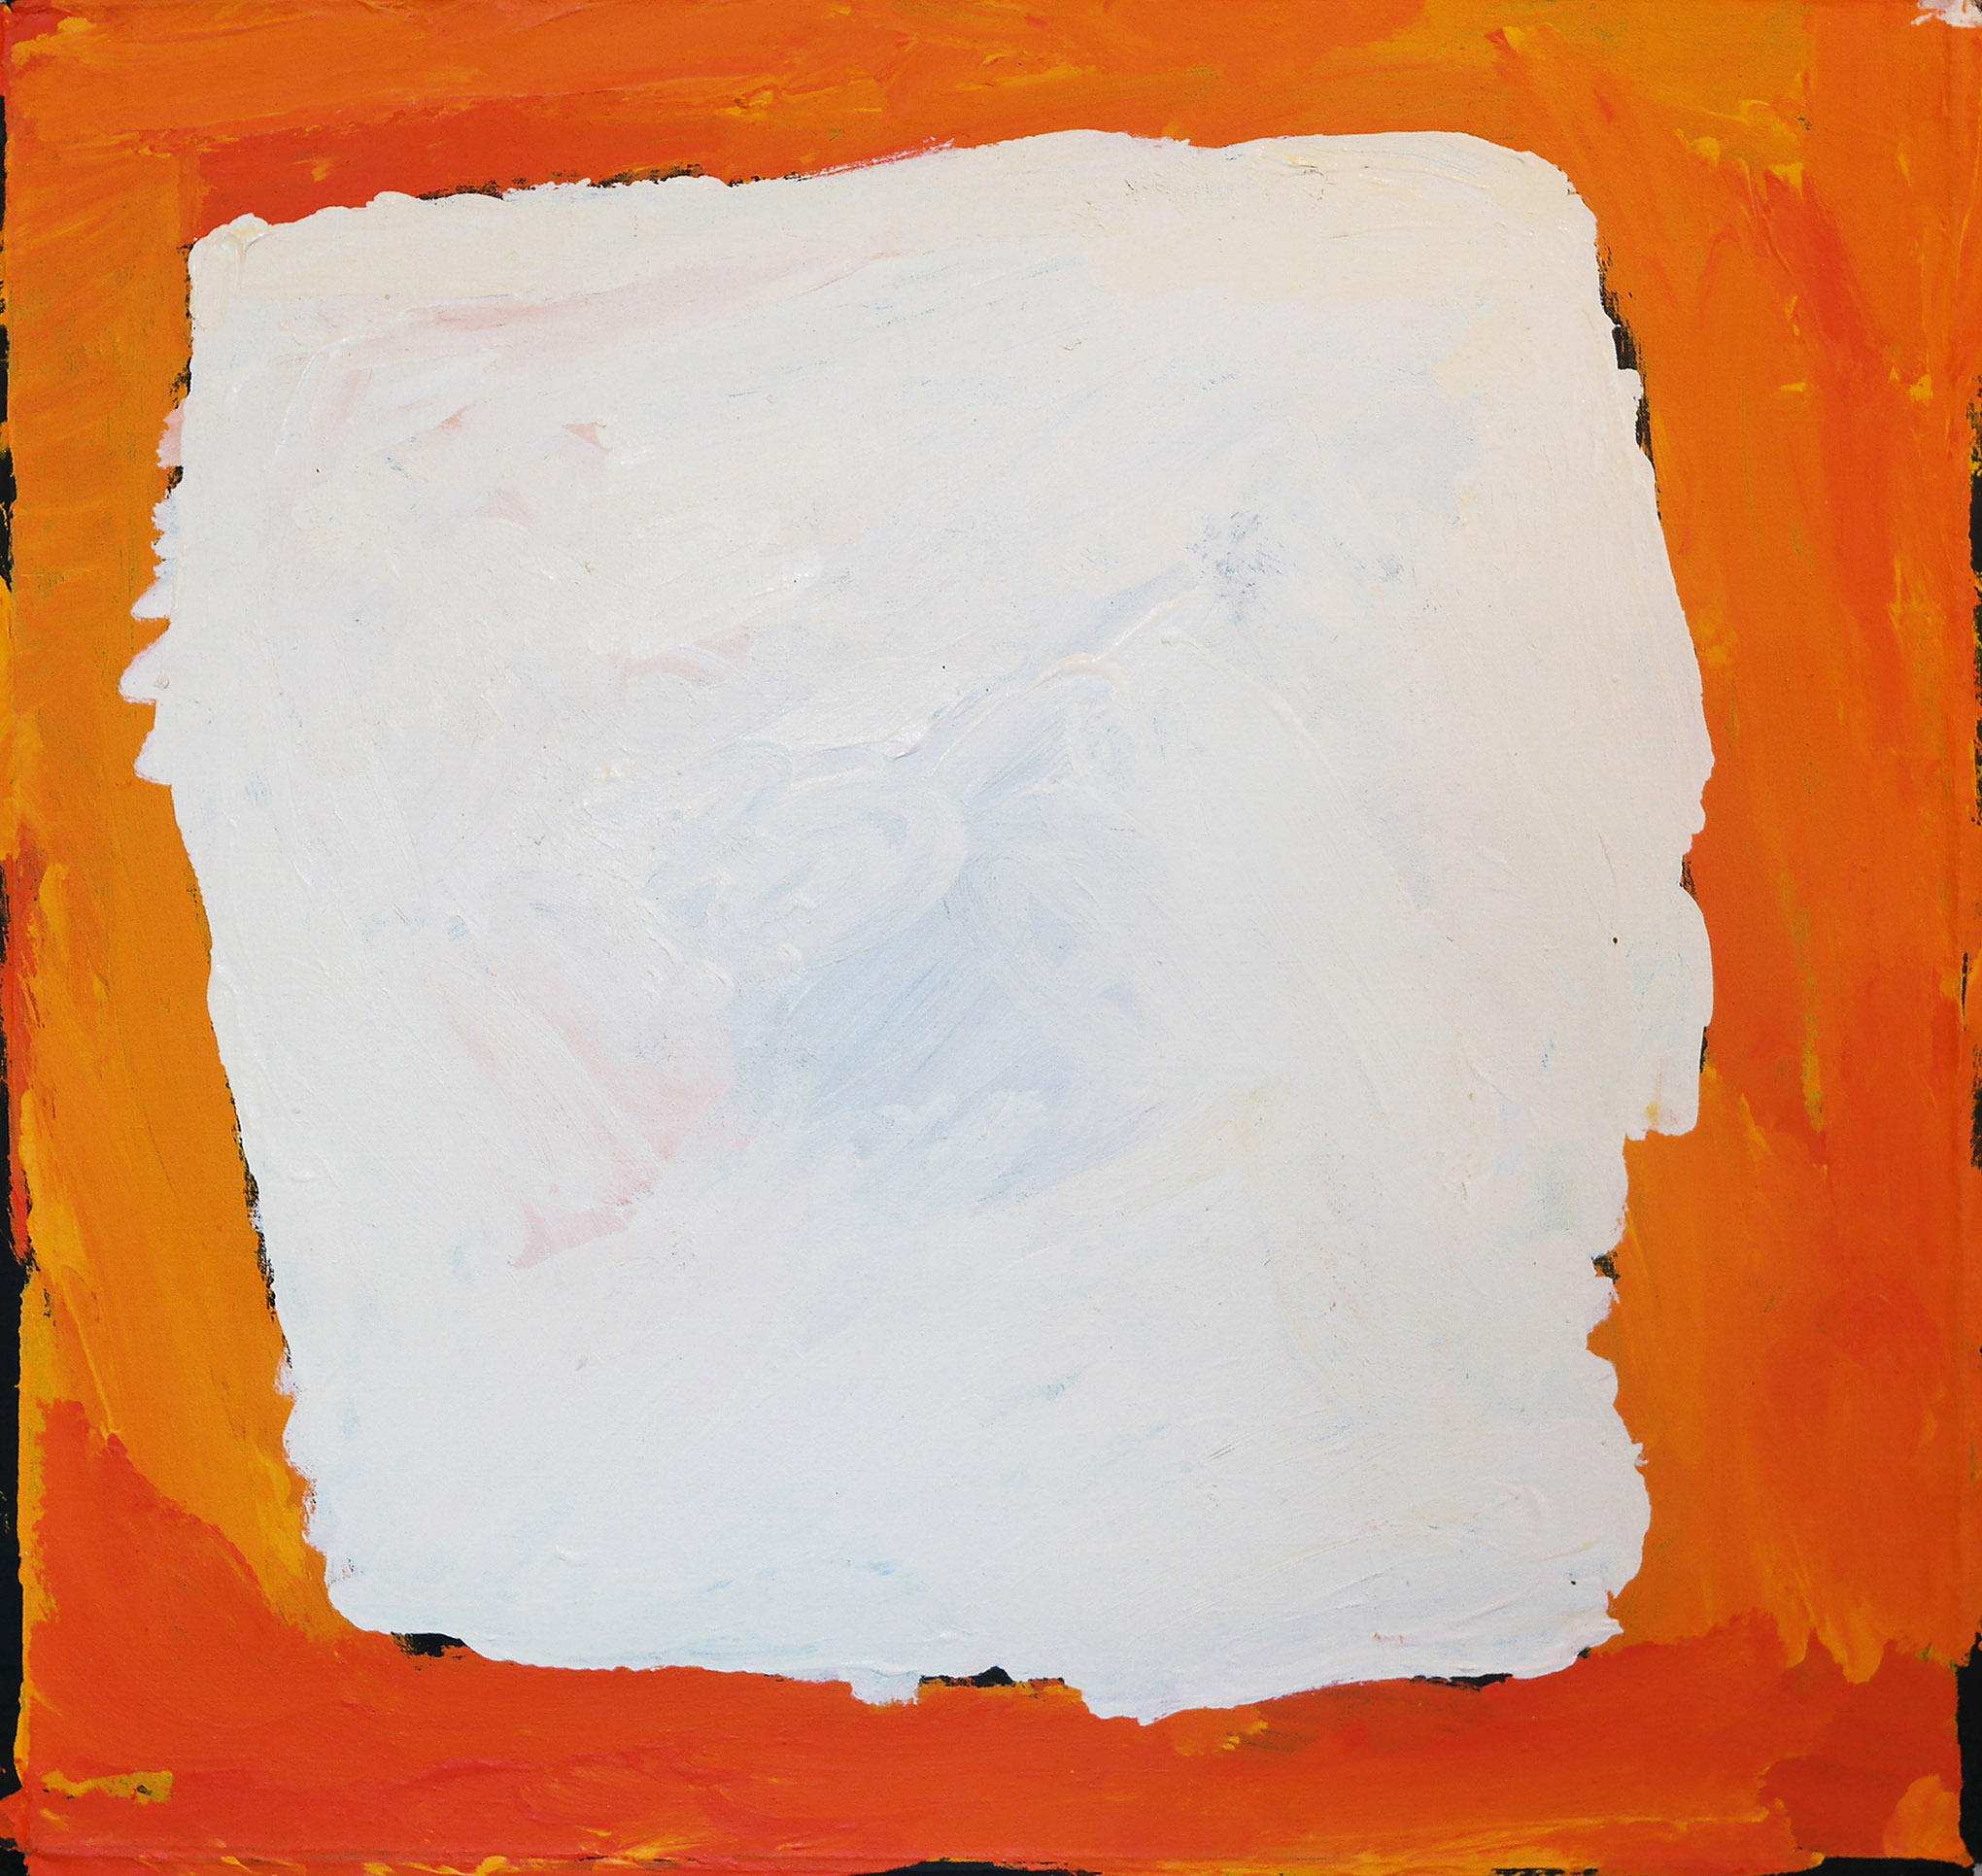 """Sandy Brumby  Victory Downs  Acrylic on canvas 24"""" x 24"""" (61 x 61 cm) Ninuku Arts Catalog #14-010   EMAIL INQUIRY"""